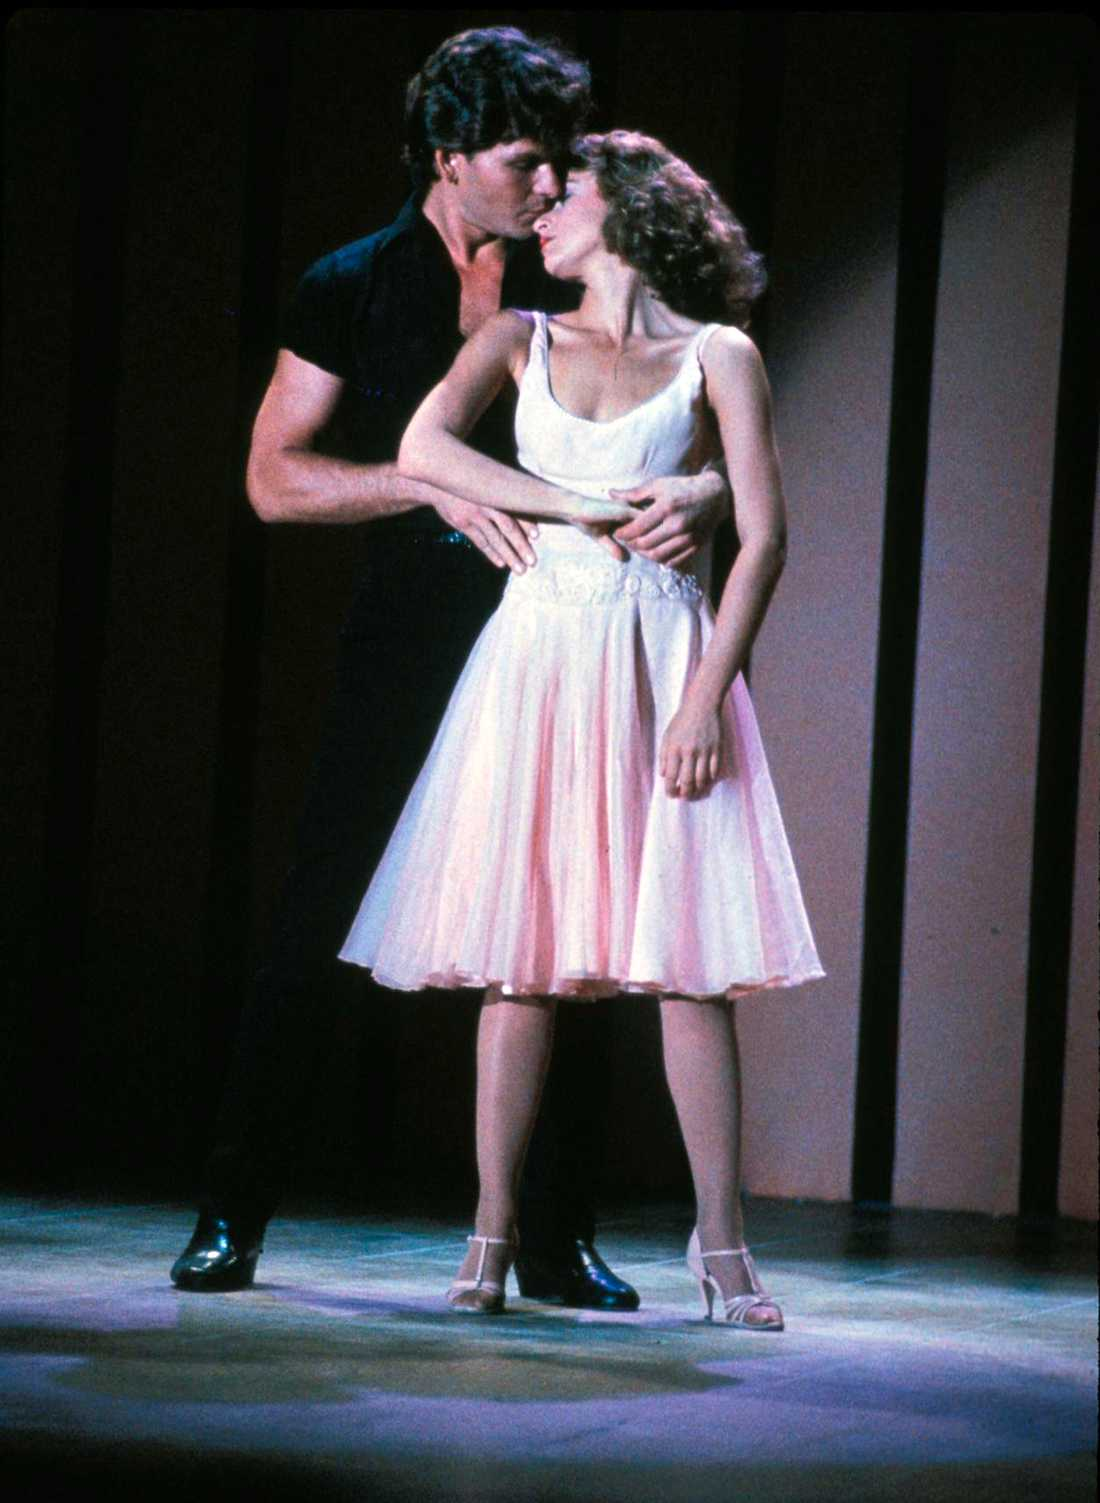 "Patrick Swayze som Johnny Castle och Jennifer Grey som Baby Houseman i filmen ""Dirty Dancing"" från 1987."